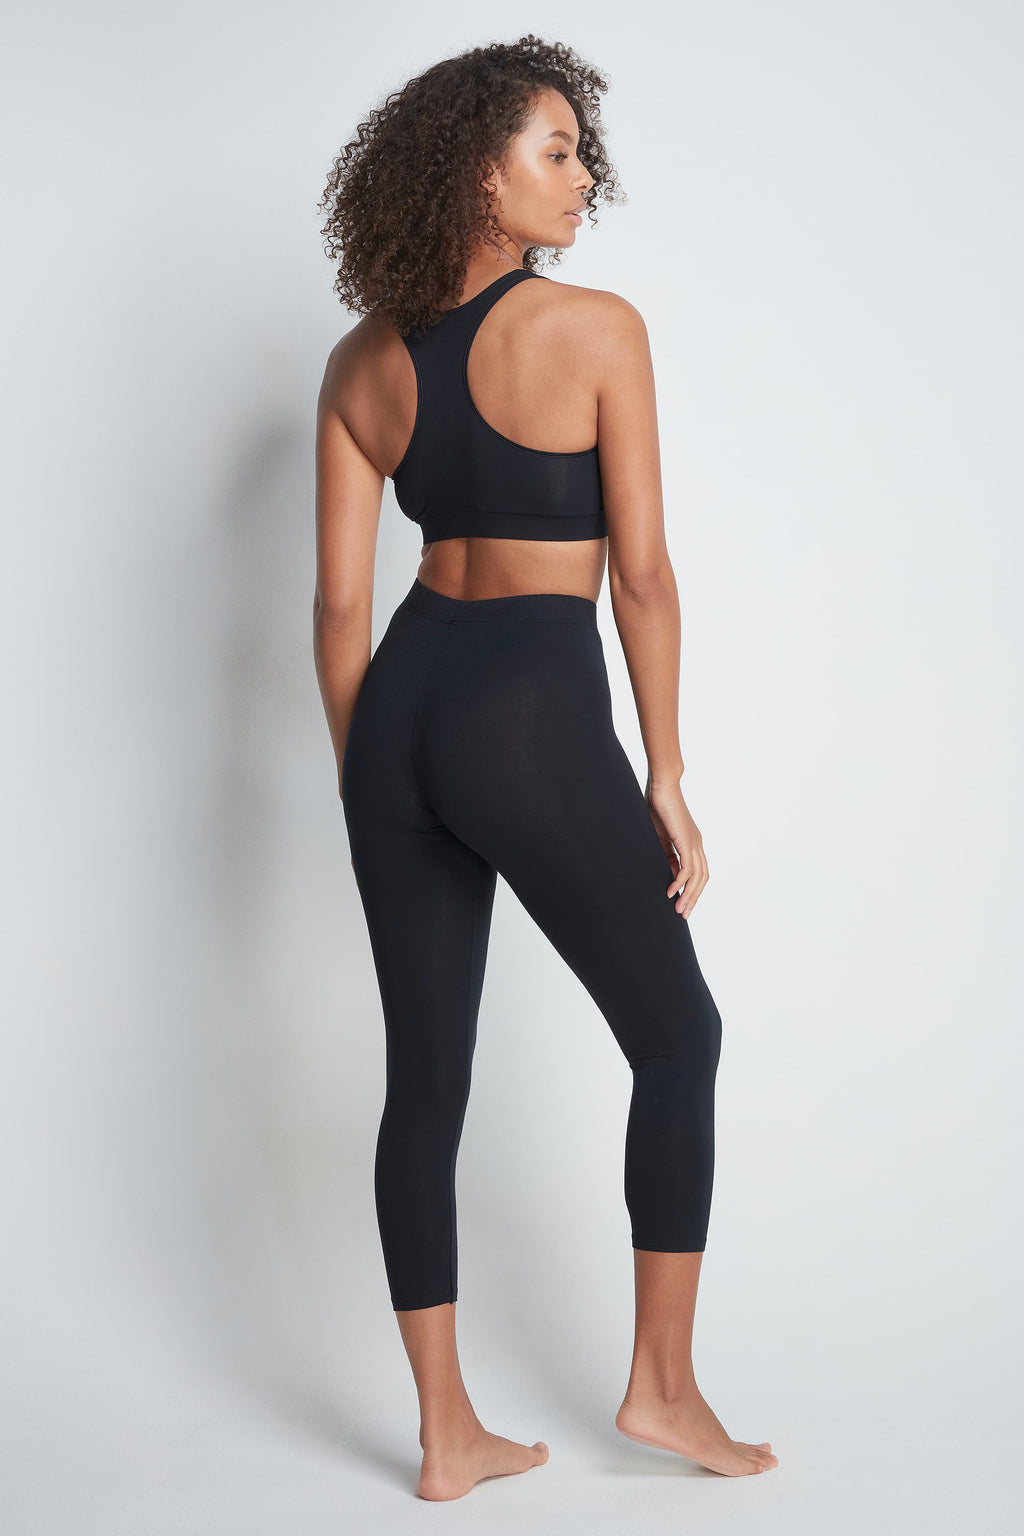 Comfortable Cropped Black Micro Modal Legging's - Soft Comfortable Leggings - Durable Black Leggings - Premium Quality Leggings - Flattering Cropped Length Black Leggings